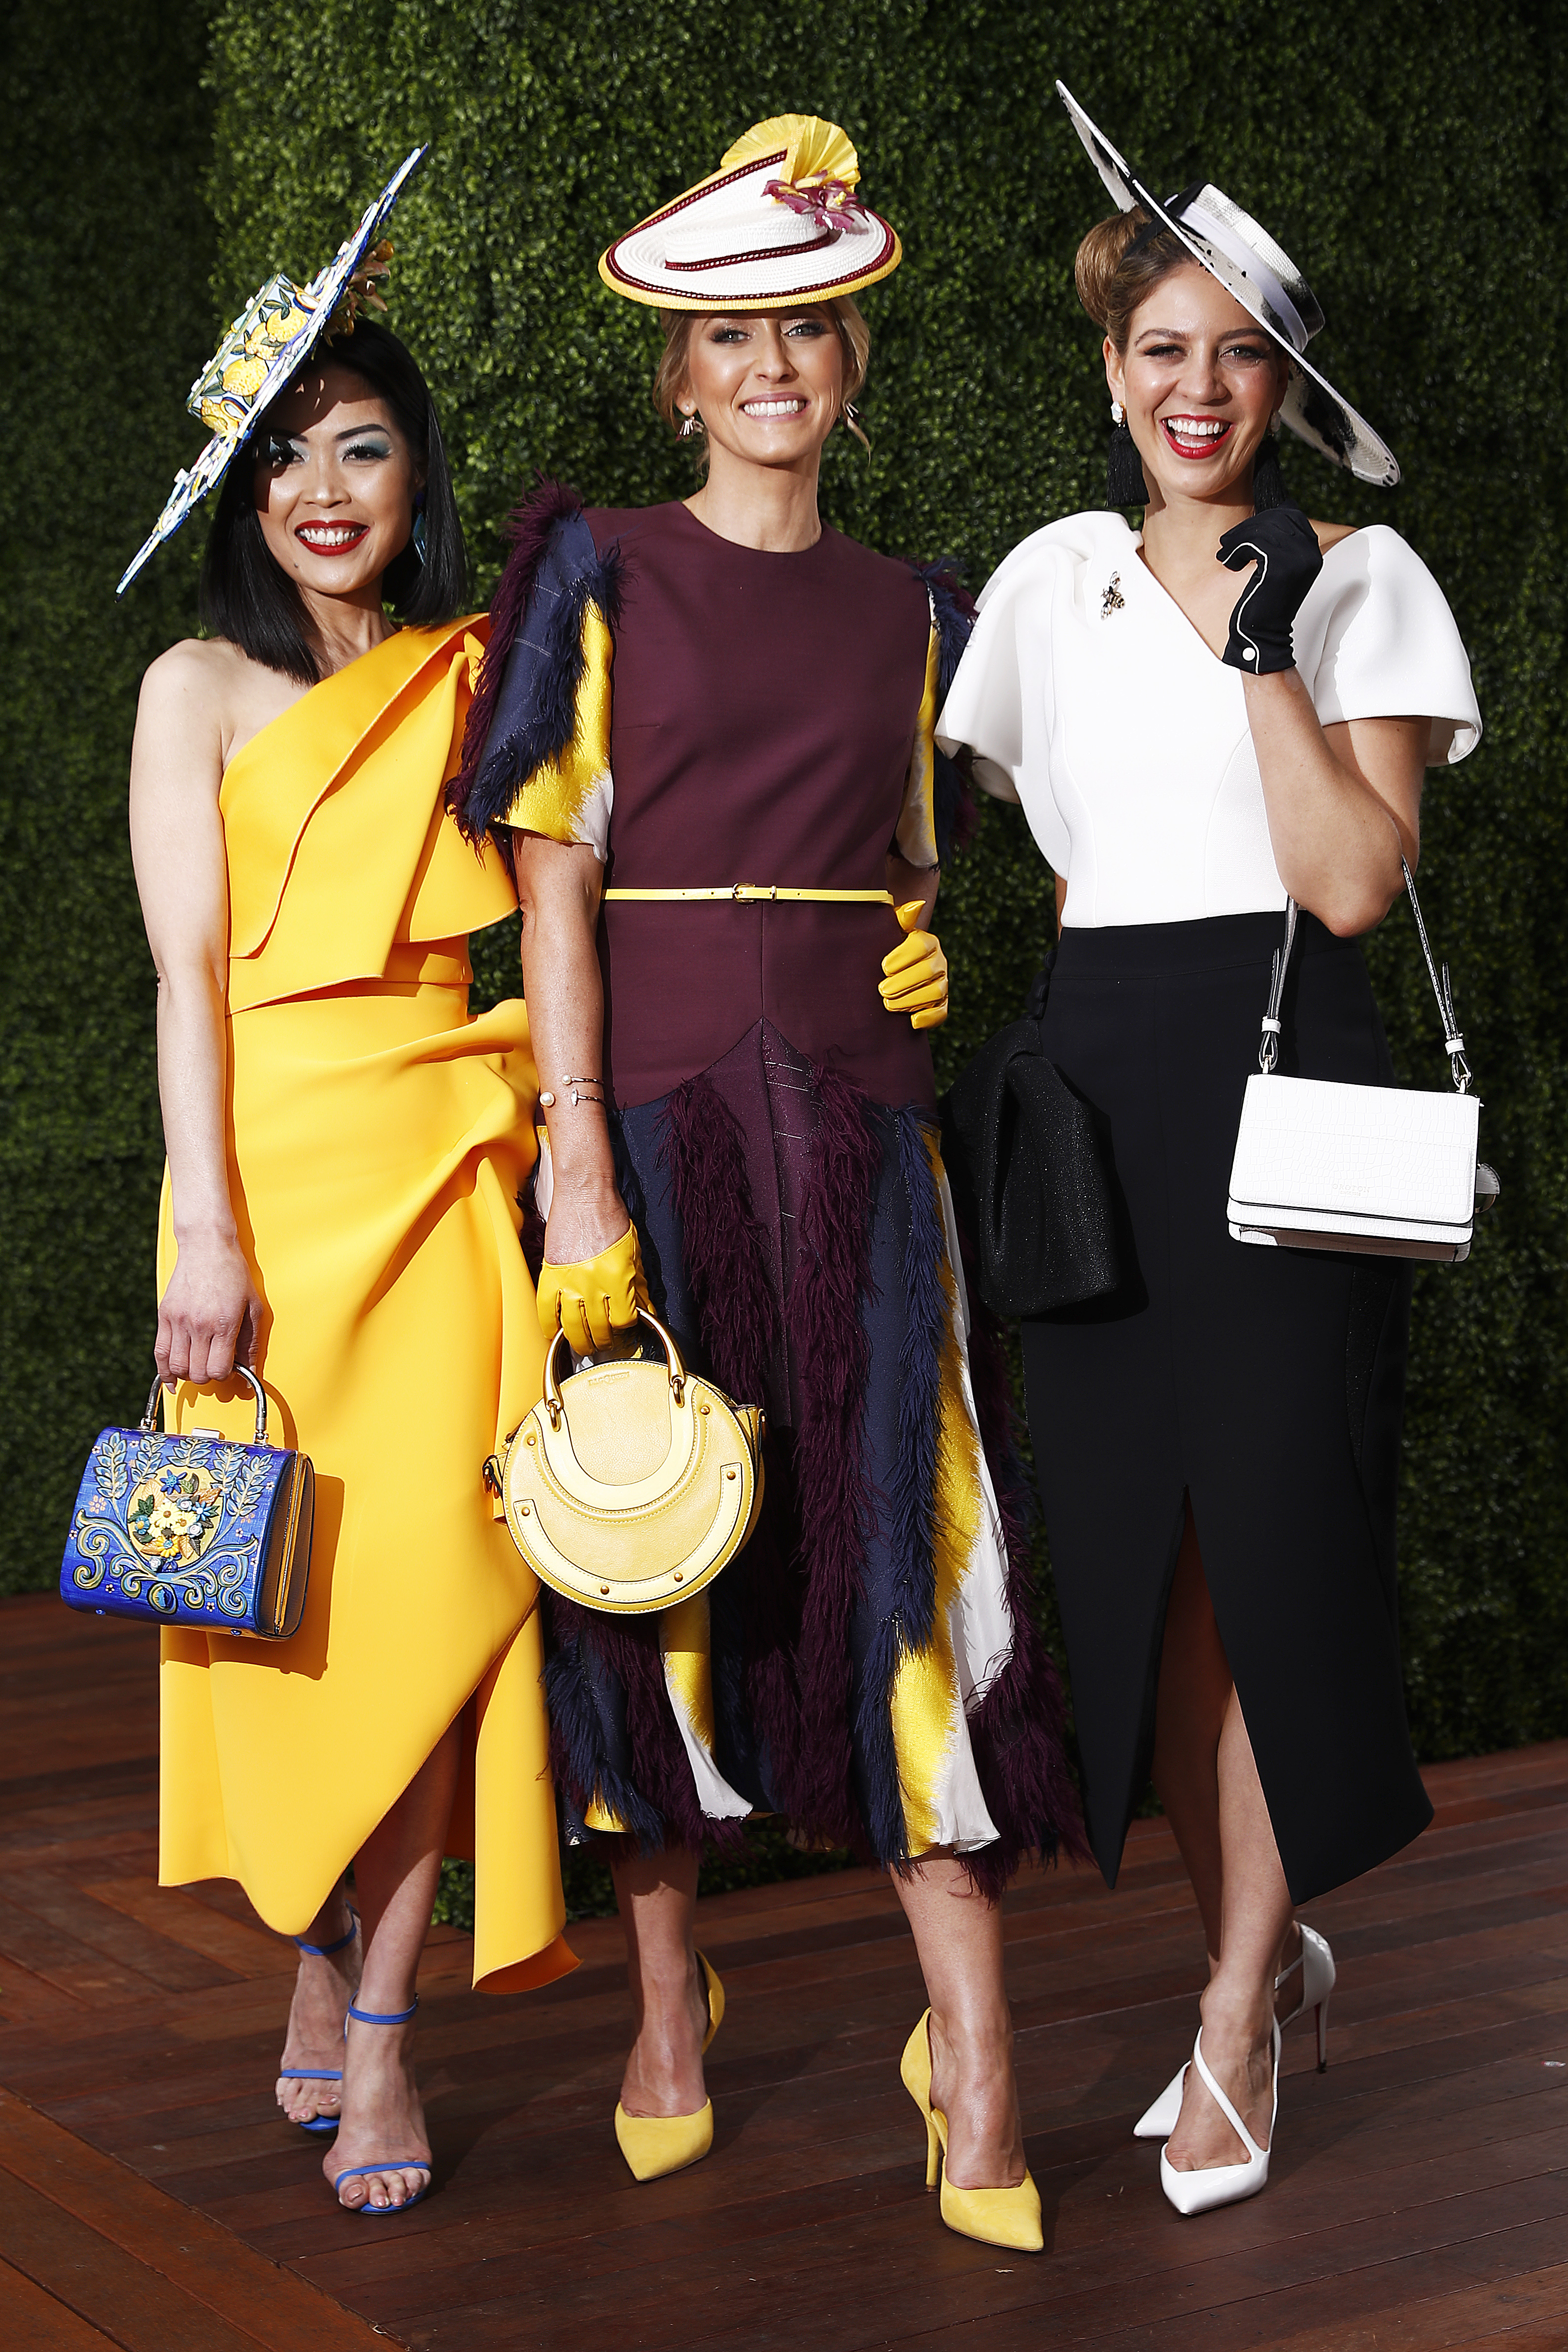 Melbourne Cup Carnival 2019 - See & Stayimage